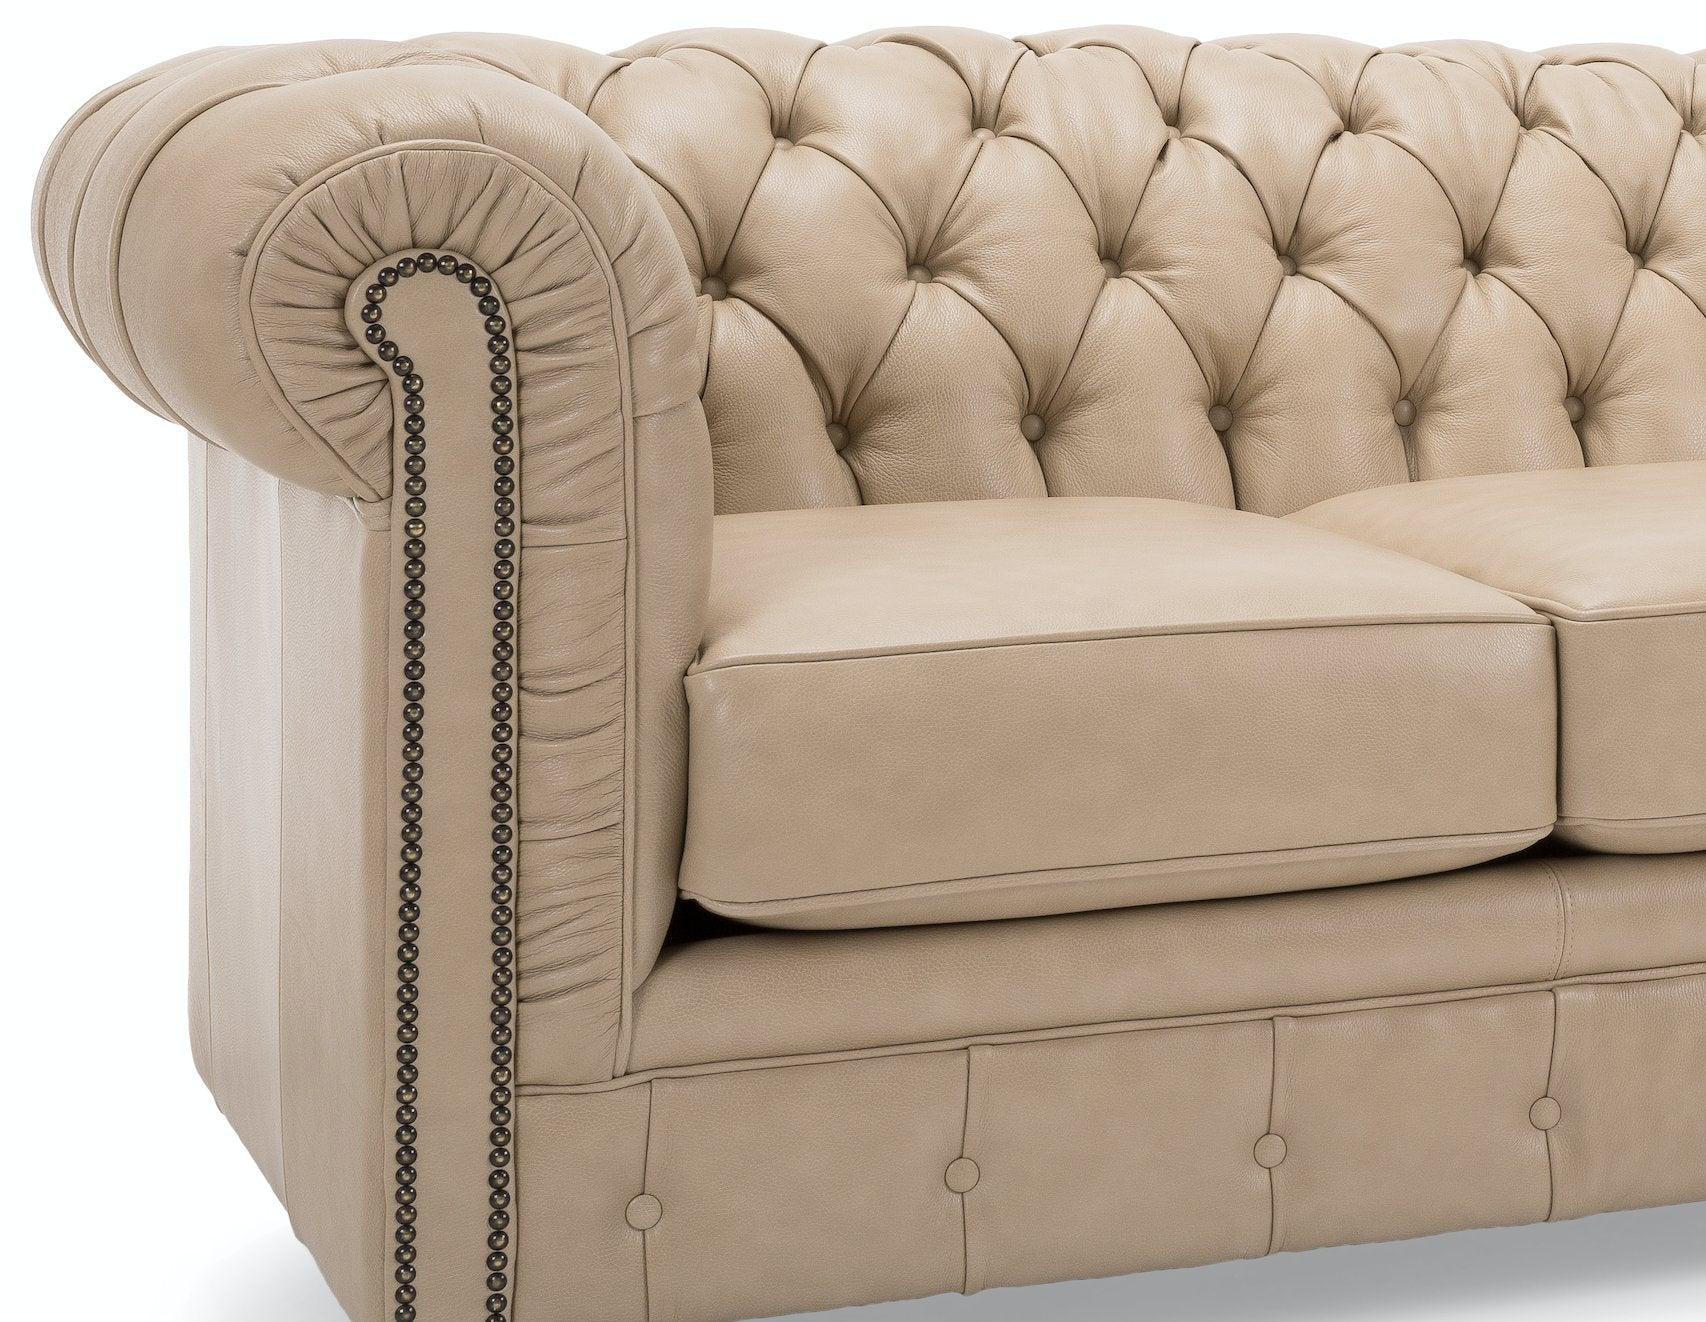 CORNWALL LEATHER SOFAS-furniture stores regina-Hunters Furniture